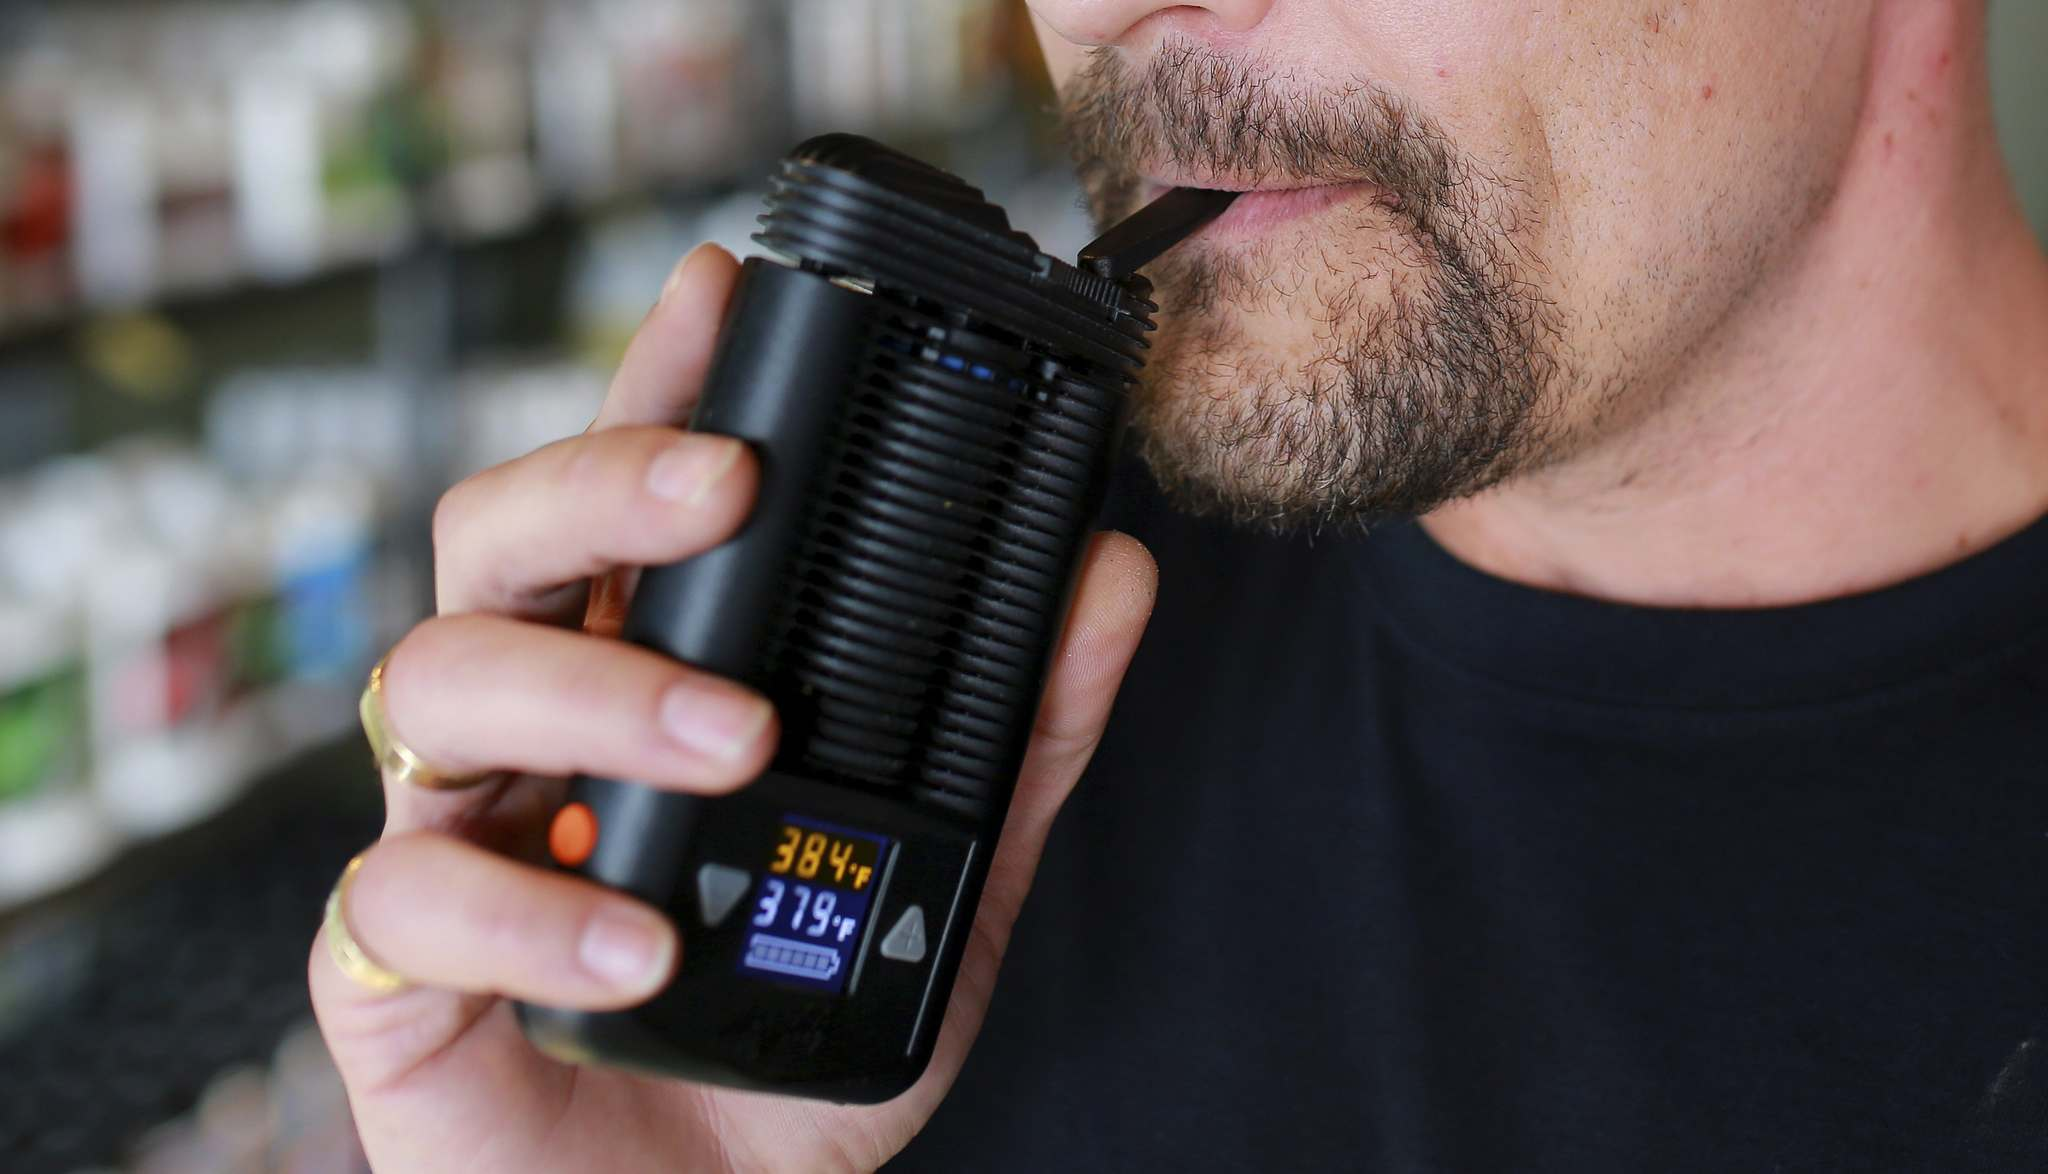 A man uses a hand-held dry-herb vaporizer, which heats cannabis without burning it.</p>